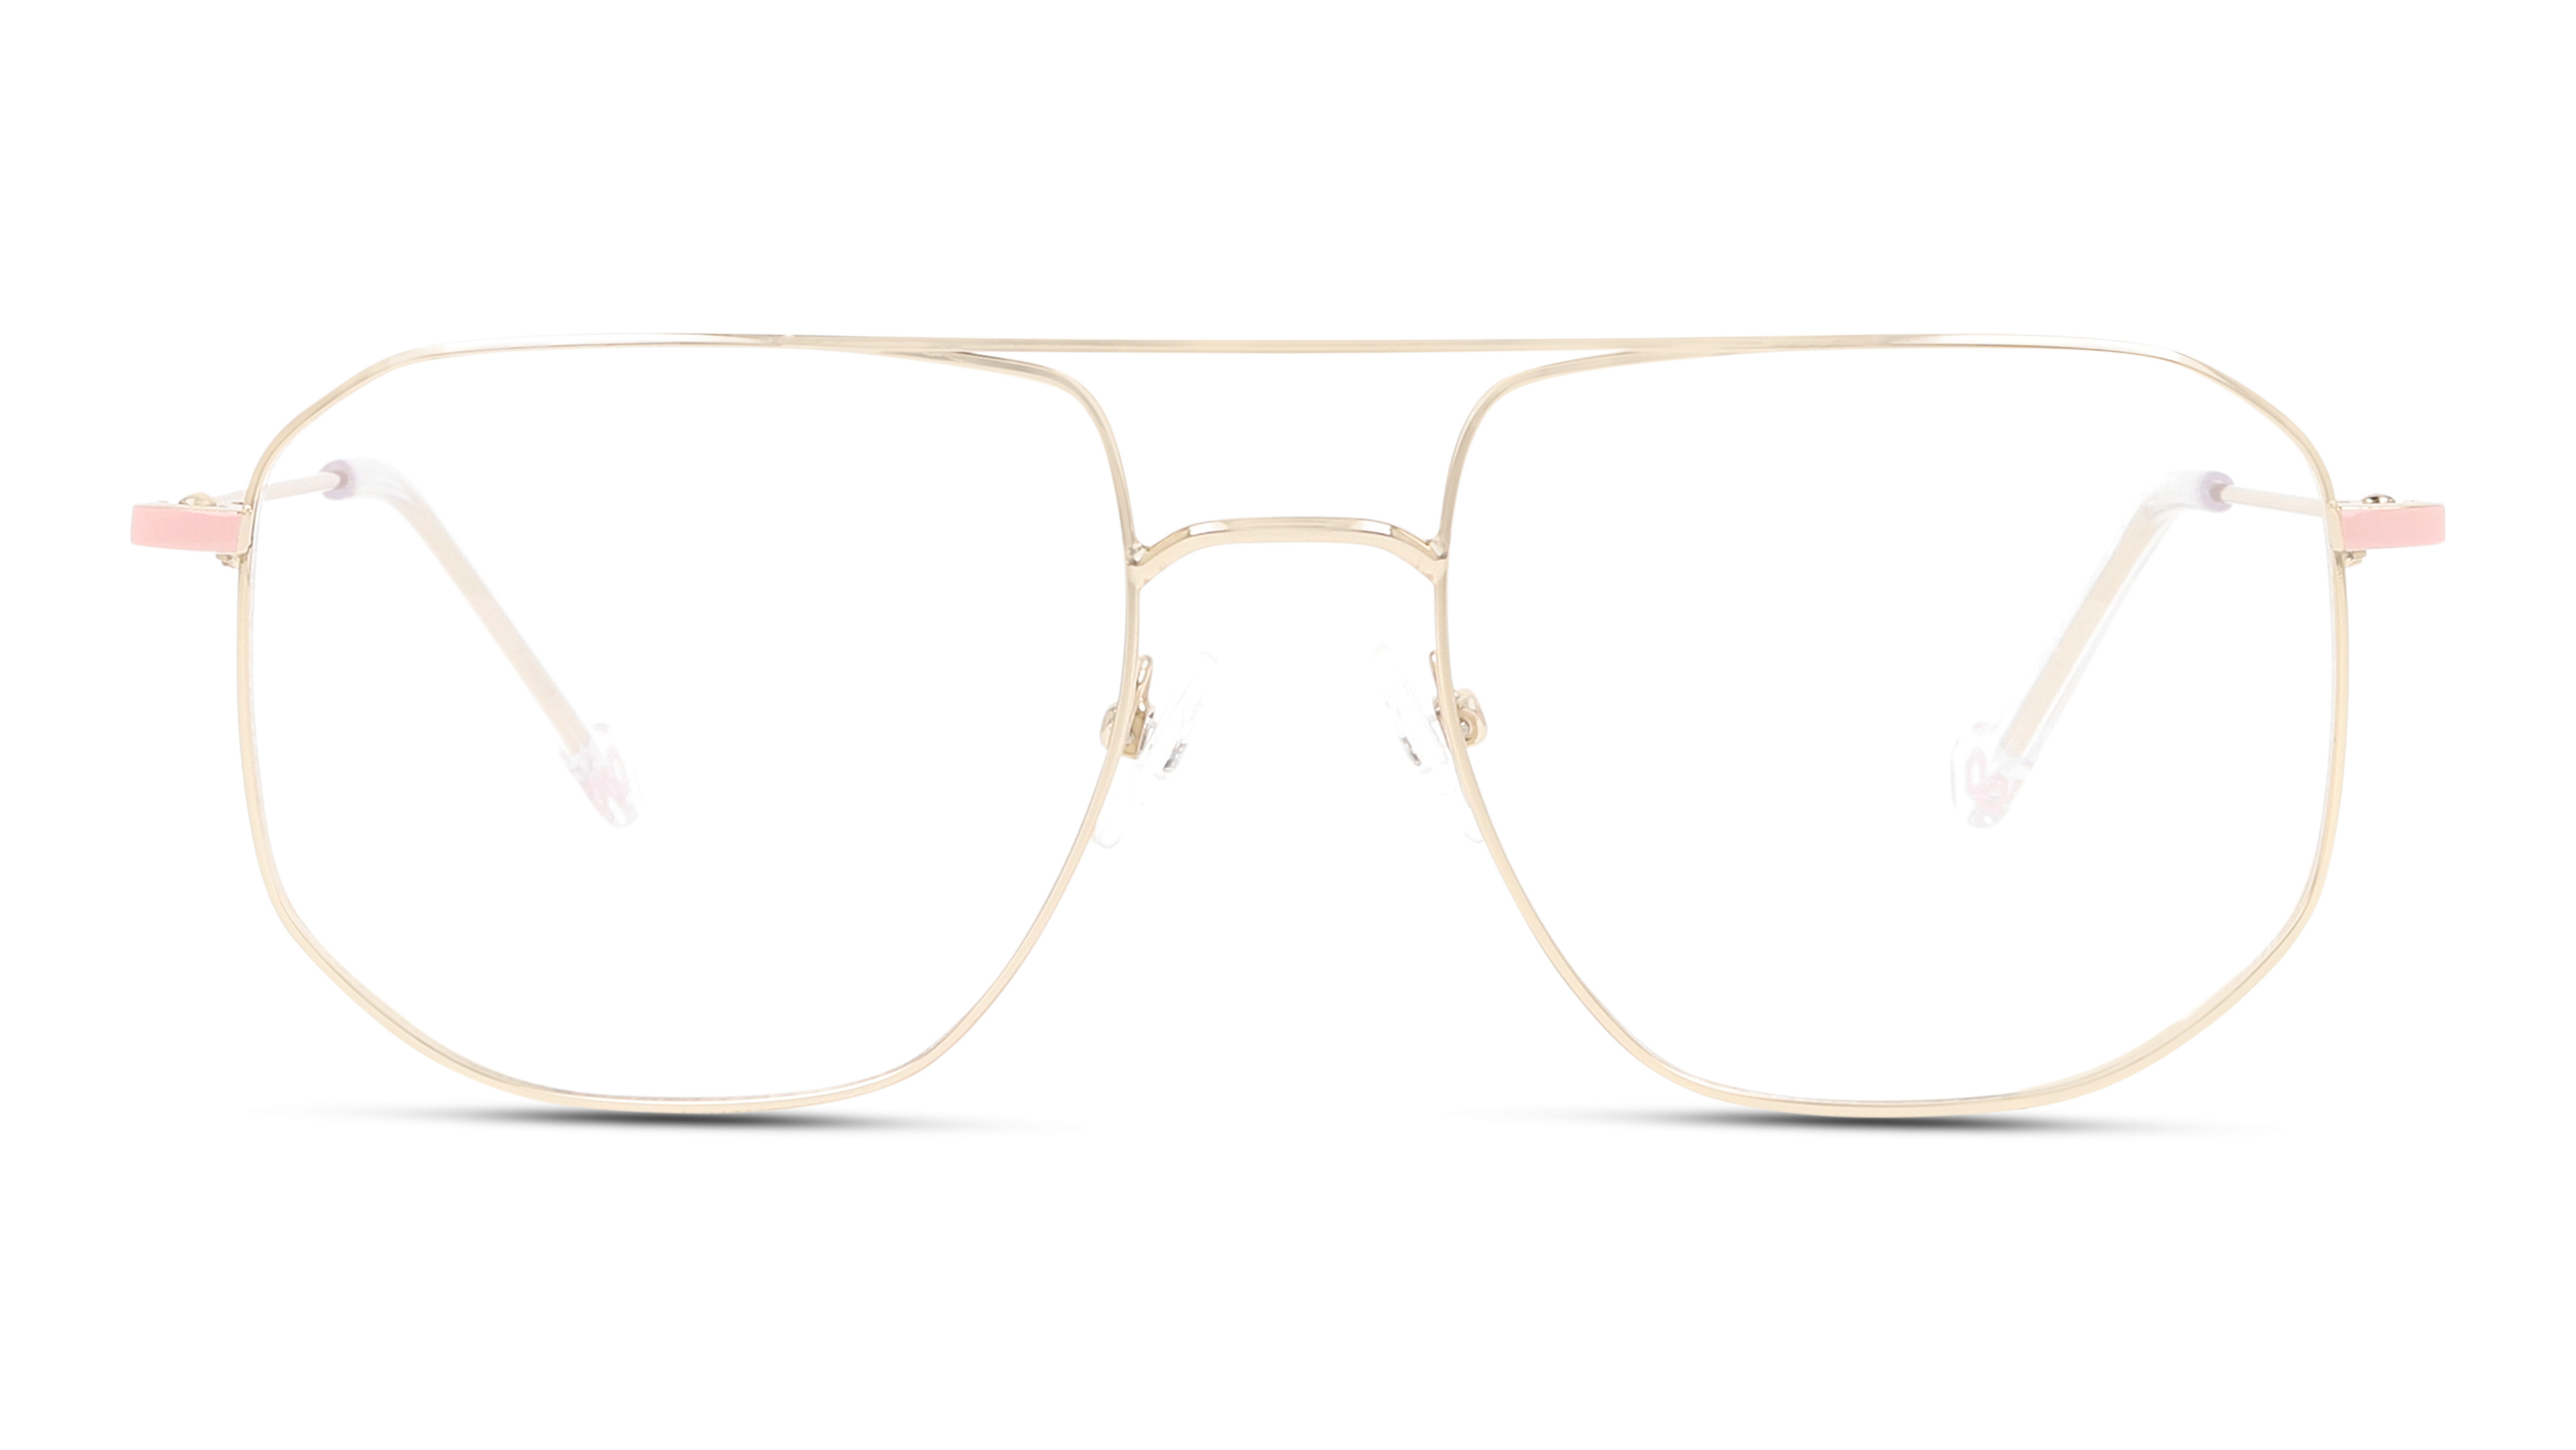 8719154584589-front-01-in-style-iskf17-eyewear-gold-pink